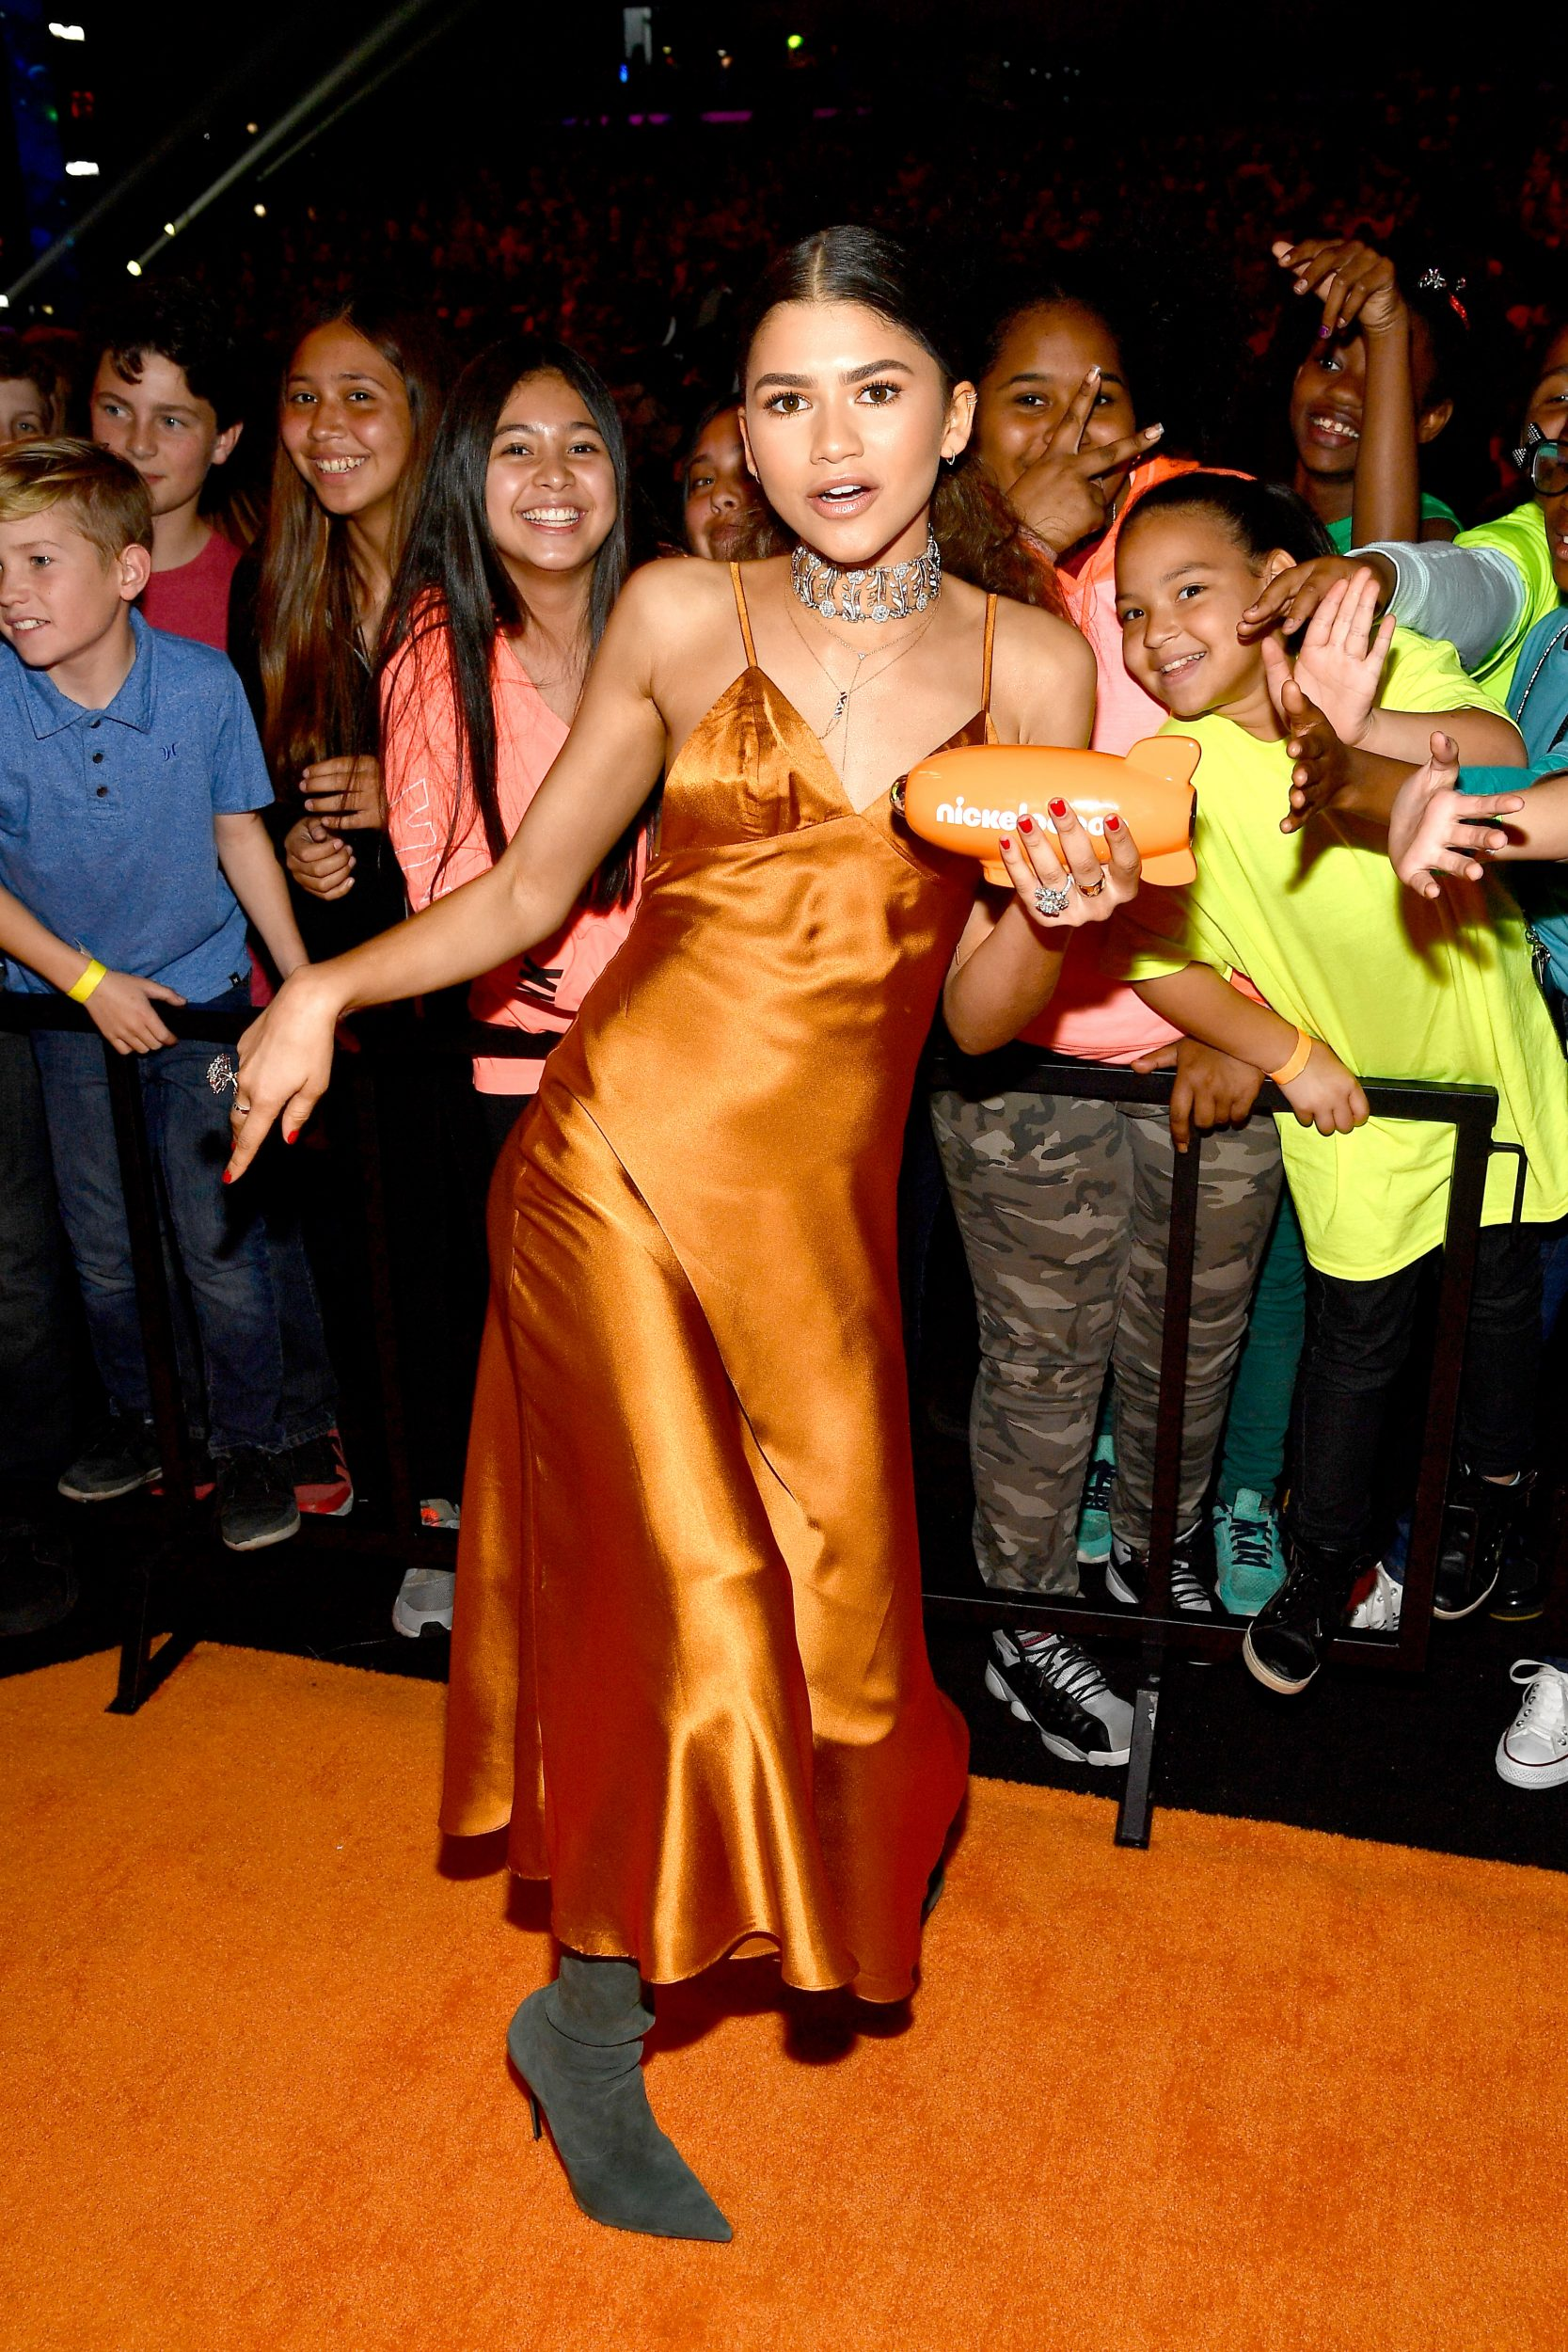 LOS ANGELES, CA - MARCH 11:  Actor Zendaya, winner of Favorite TV Actress for 'K.C. Undercover,' poses with fans at Nickelodeon's 2017 Kids' Choice Awards at USC Galen Center on March 11, 2017 in Los Angeles, California.  (Photo by Frazer Harrison/KCA2017/Getty Images for Nickelodeon)